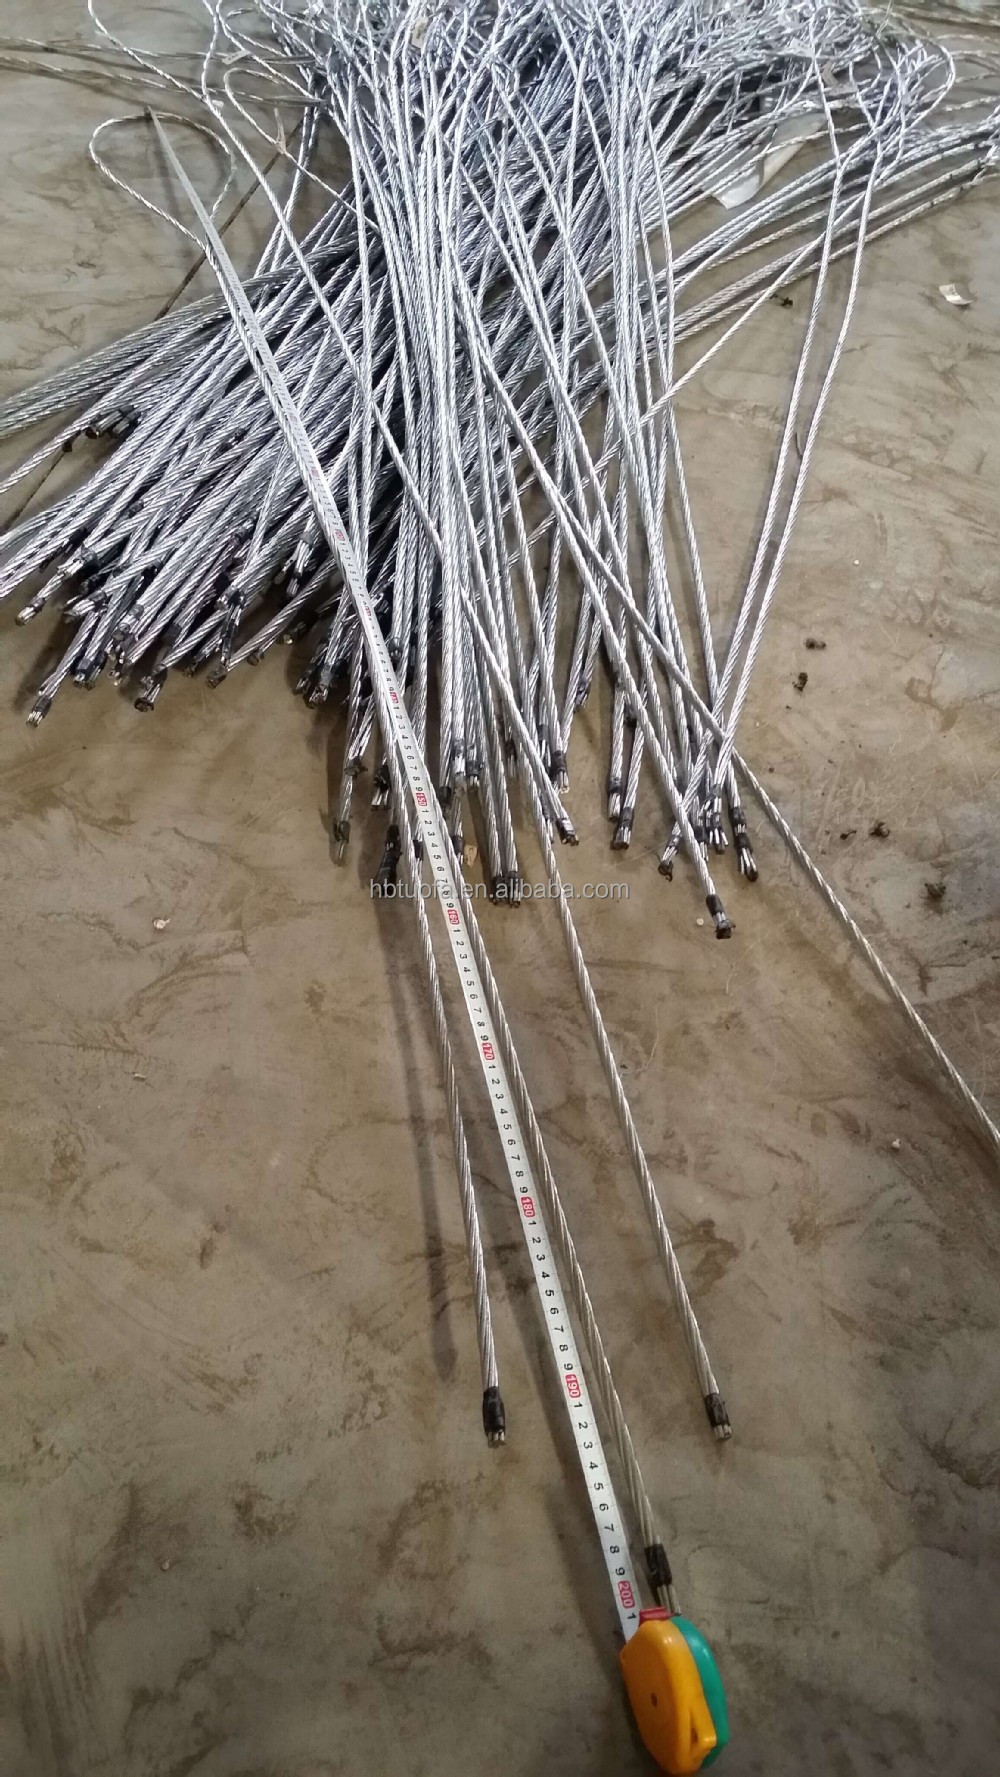 galvanized stay wire /guy wire 1.9meter and 2 meter pole top make off guy gripwire rope cross clamp